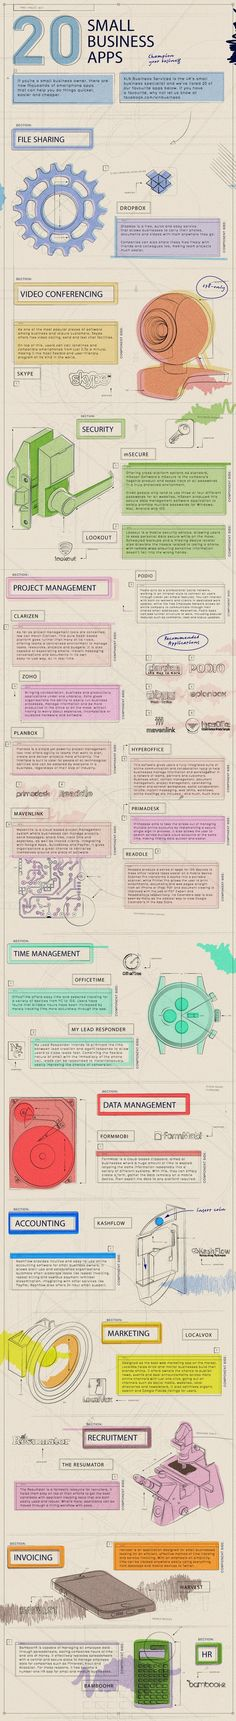 20 Small #Business #App #infographic